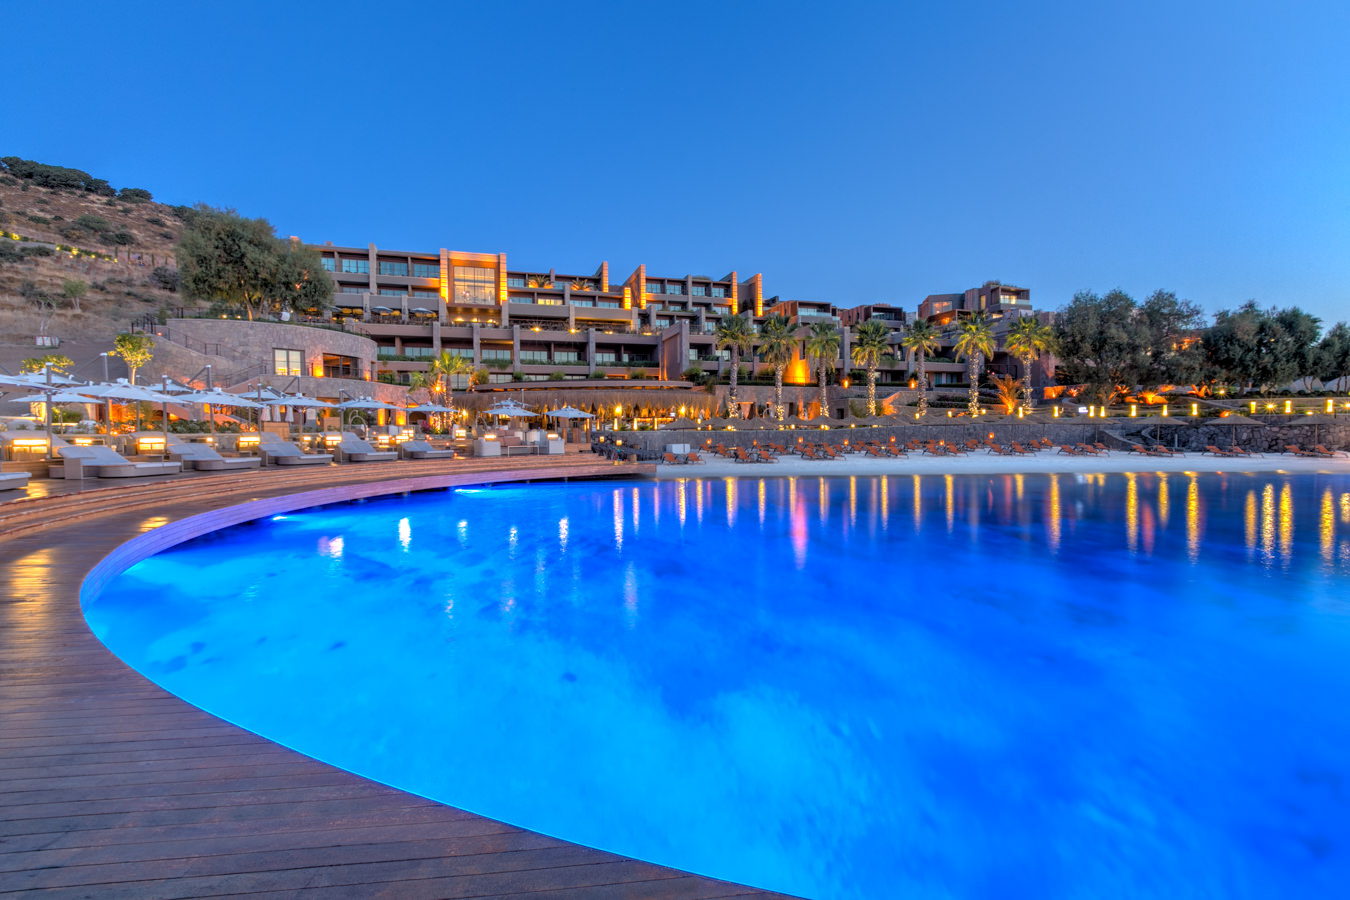 Caresse Bodrum Turkey George Fakaros Architectural Photography Interior Commercial Hotel 360 Architecture